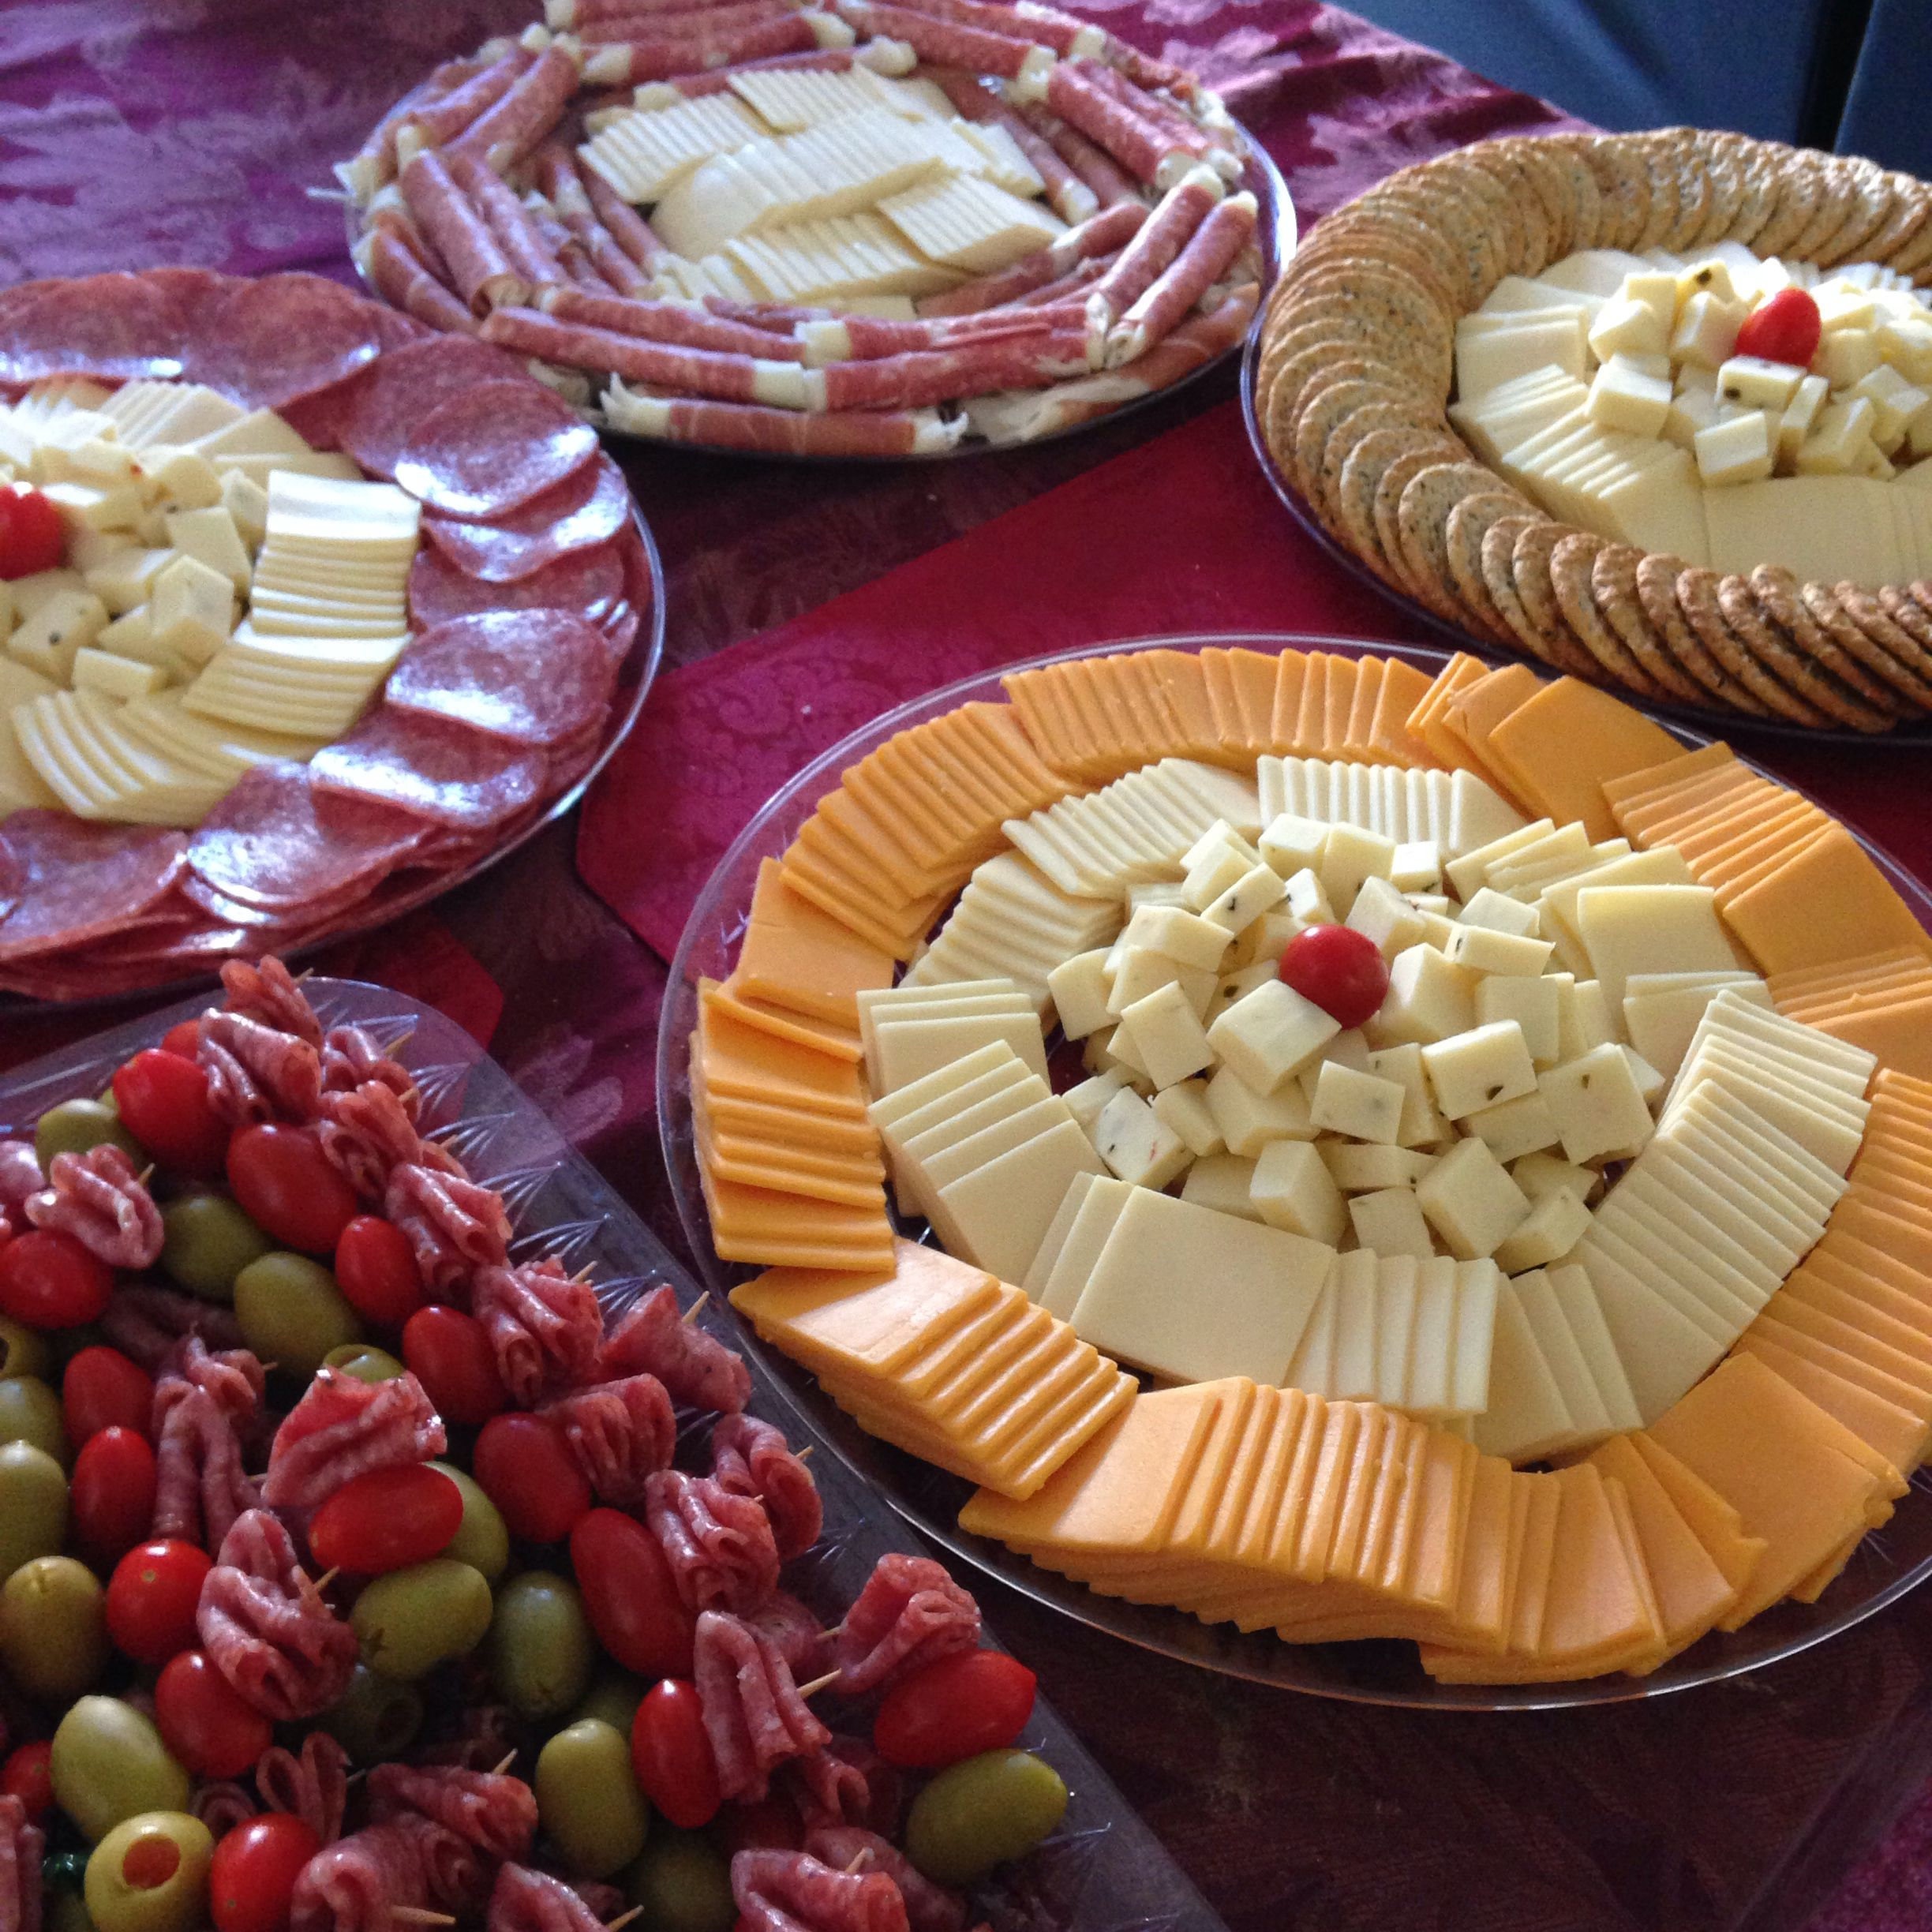 Appetizer Only Wedding Reception: DIY Appetizers Cheese Plates, Meat And Olives For Mel's